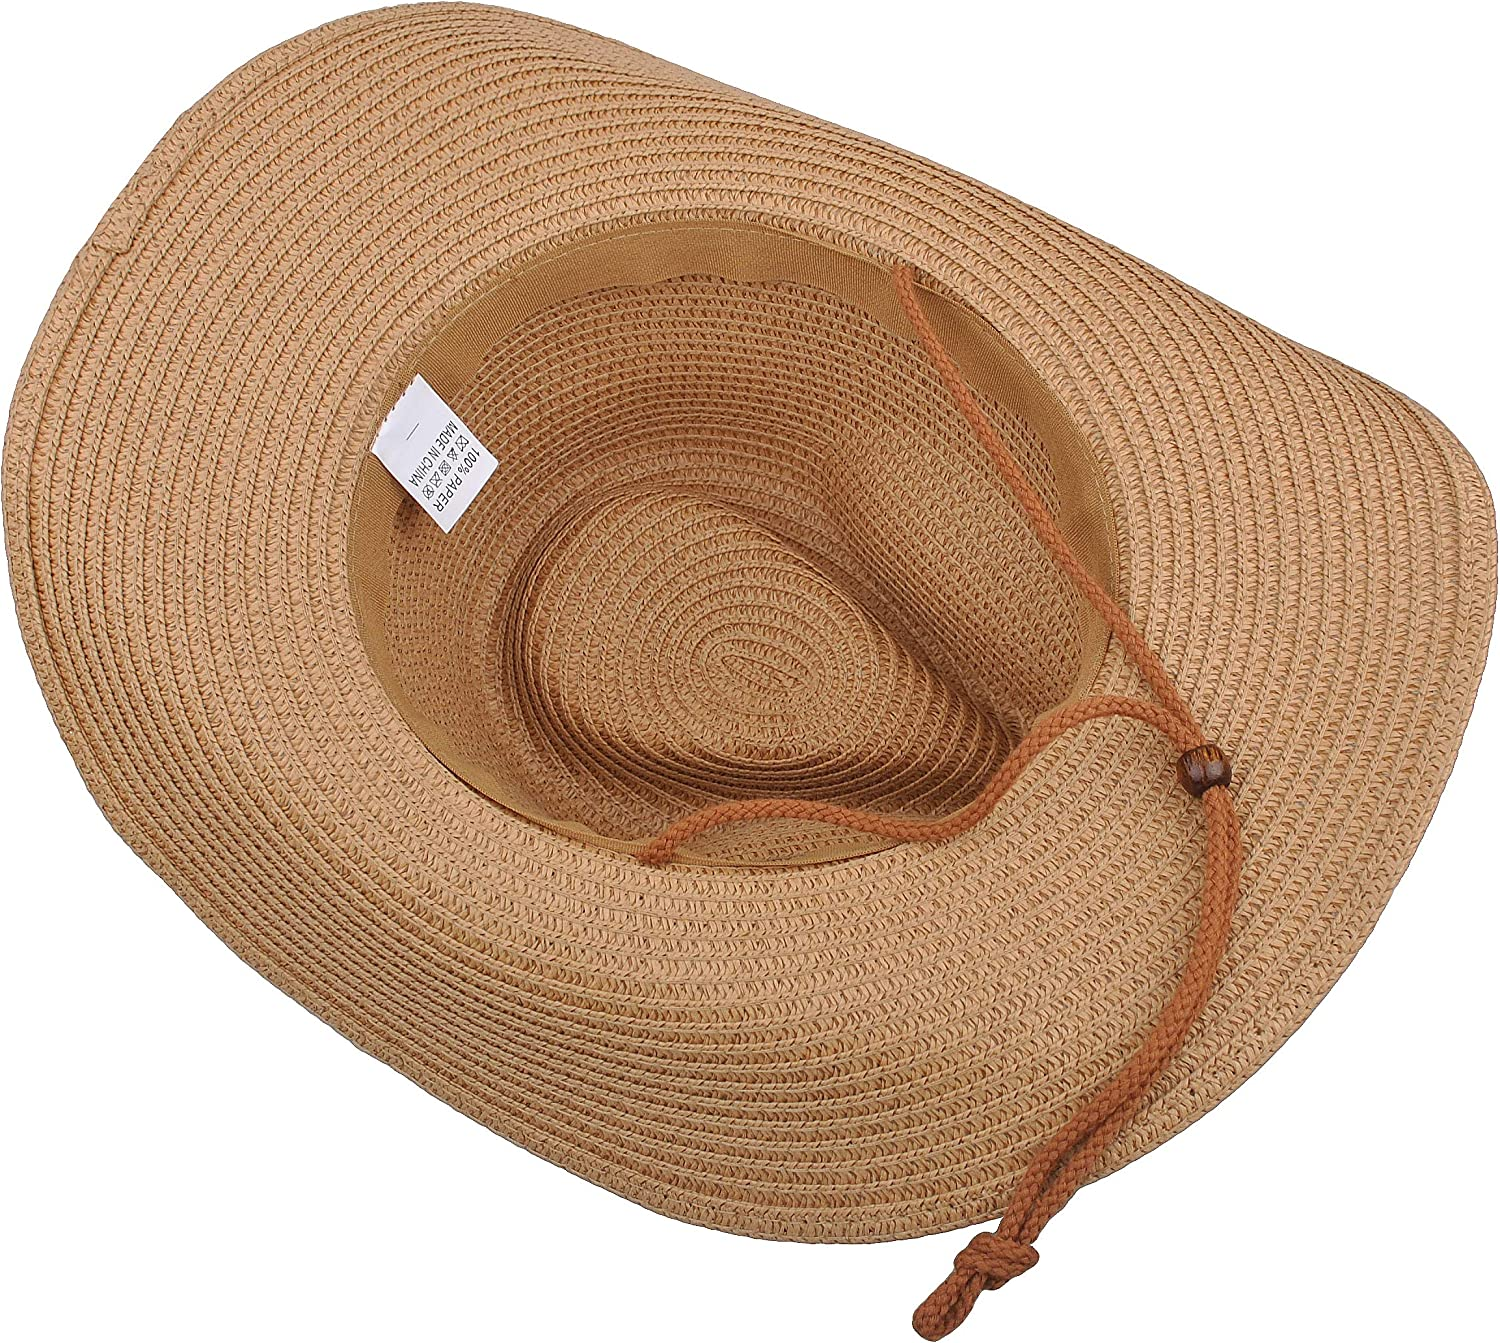 MISSMARCH Hipste Women Men Straw Western Cowboy Hat Handmade Weave Beach Sombrero Hombre Cowgirl Jazz Caps Pun Fishing Bike Holiday Beach Big hat Sun Sun Shade s